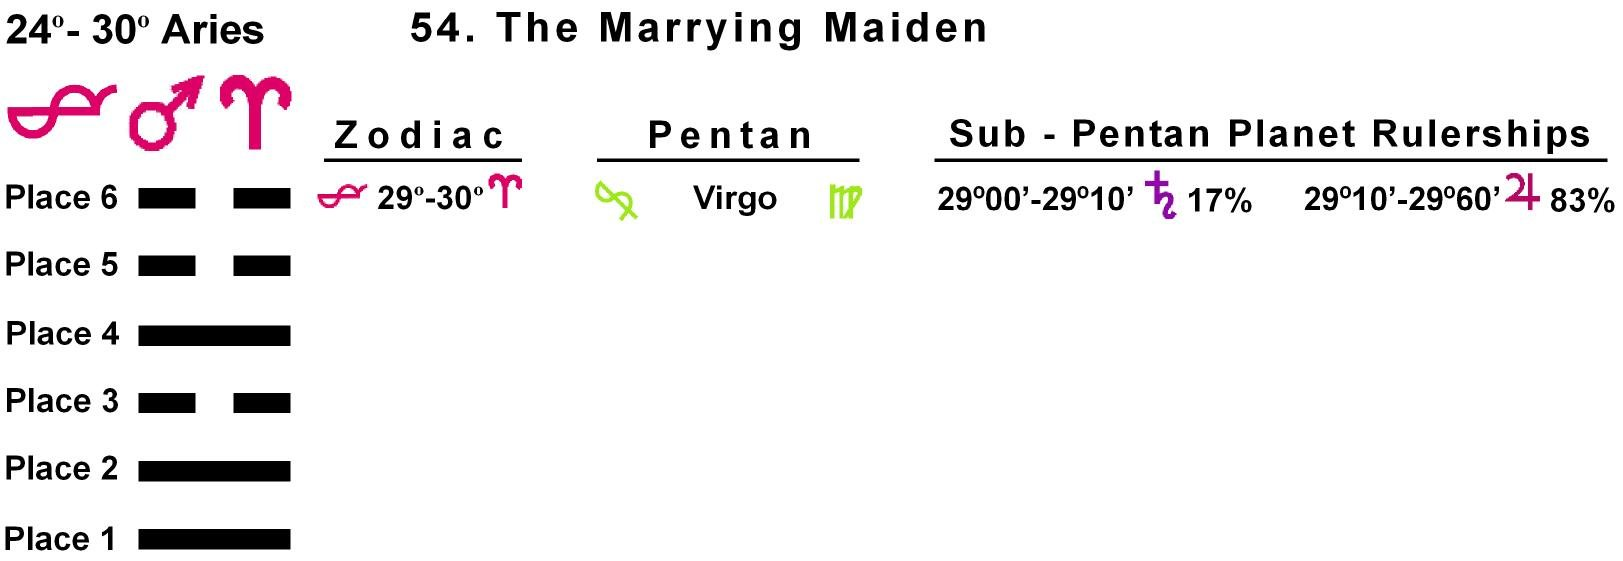 Pent-lines-01AR 29-30 Hx-54 Marrying Maiden